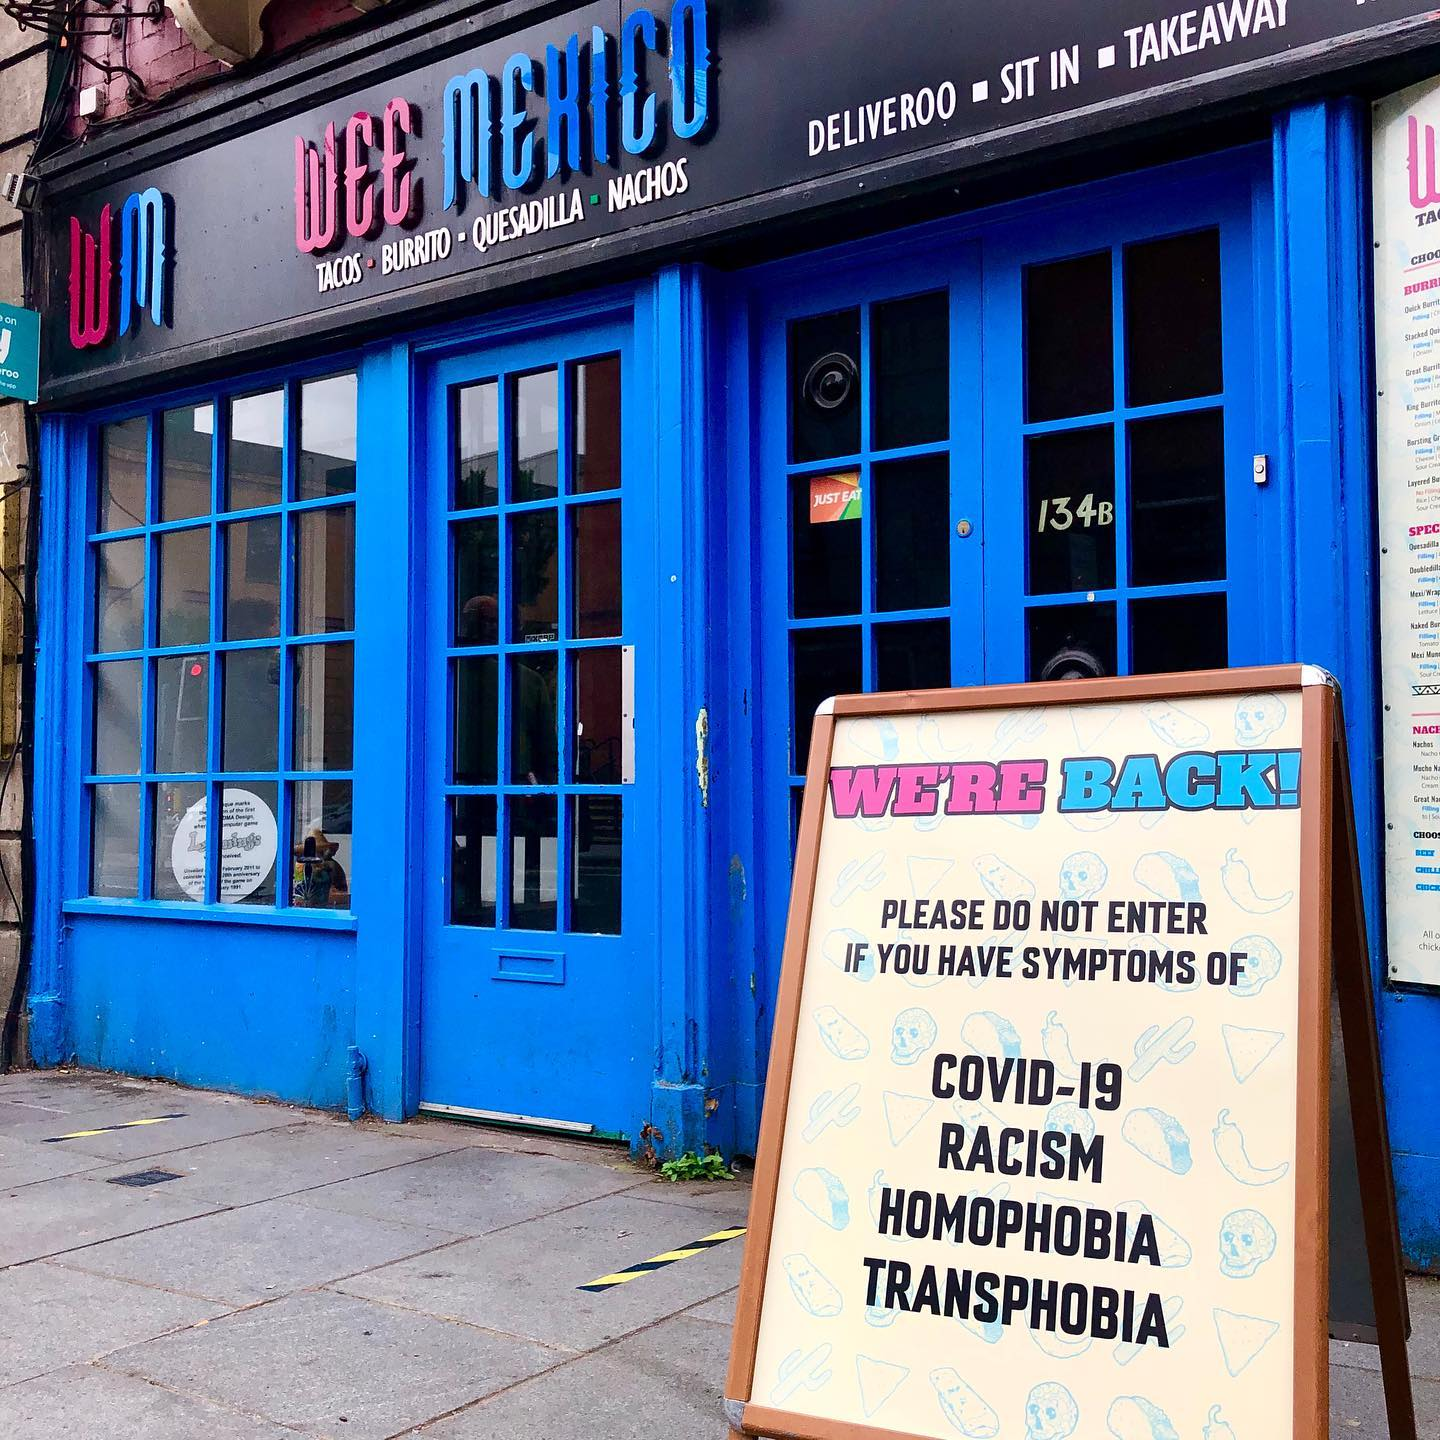 wee mexico, sign, homophobia, transphobia, racism, covid-19